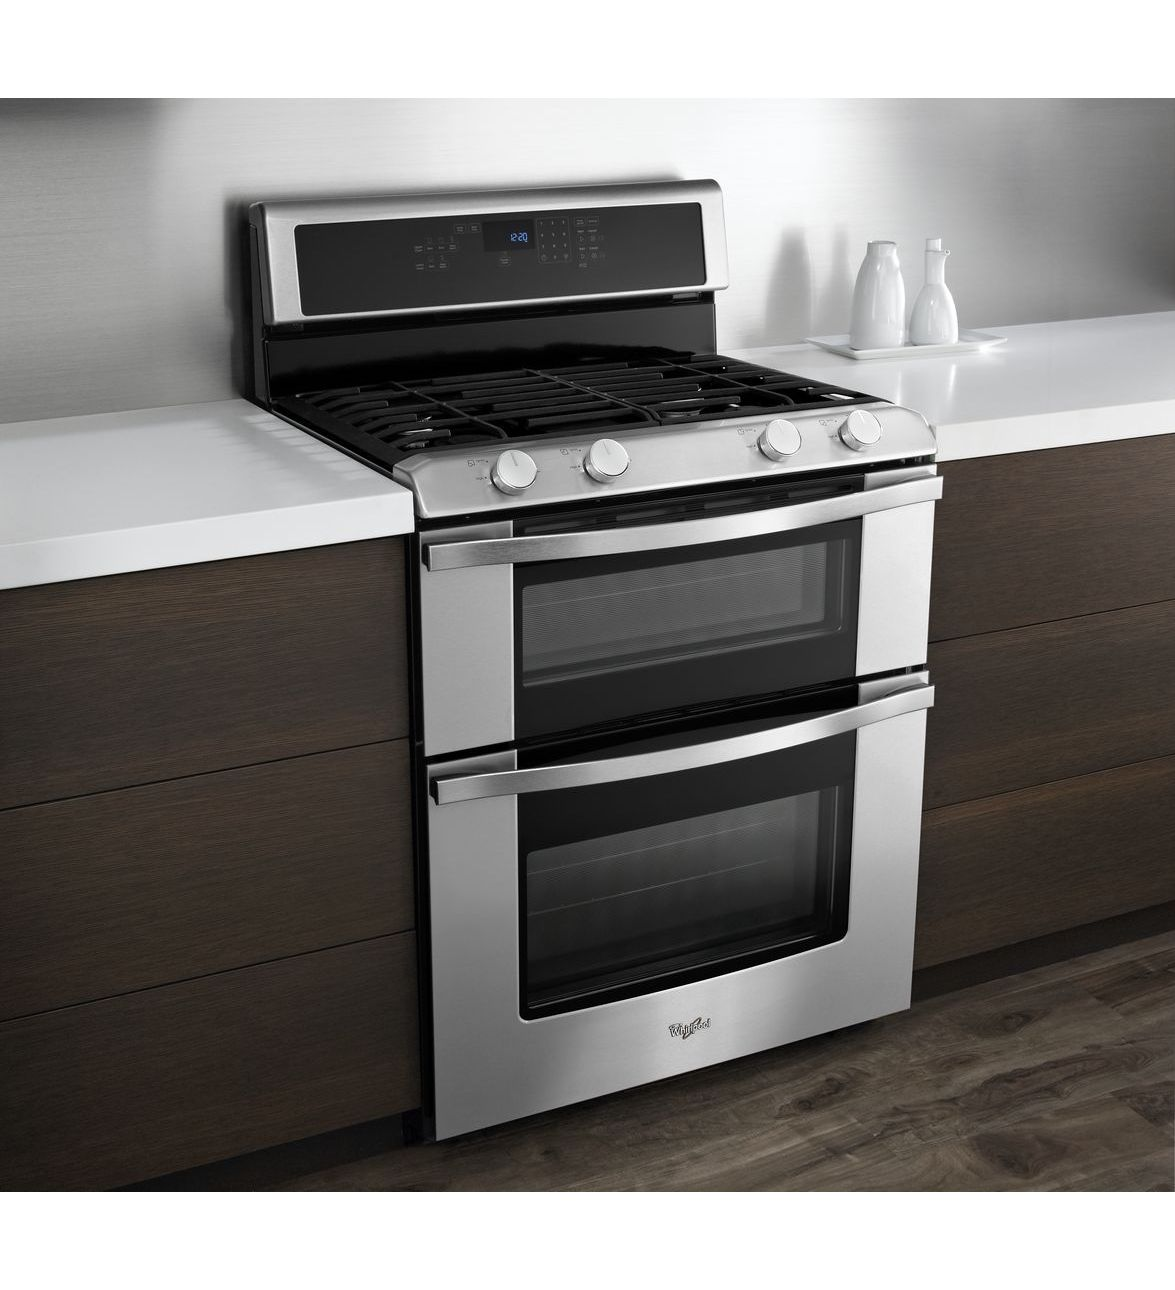 Whirlpool Countertop Stove Whirlpool 3wgg555s0bs 6 Total Cu Ft Double Oven Gas Range With Accubake System 220 Volts 50 Hz